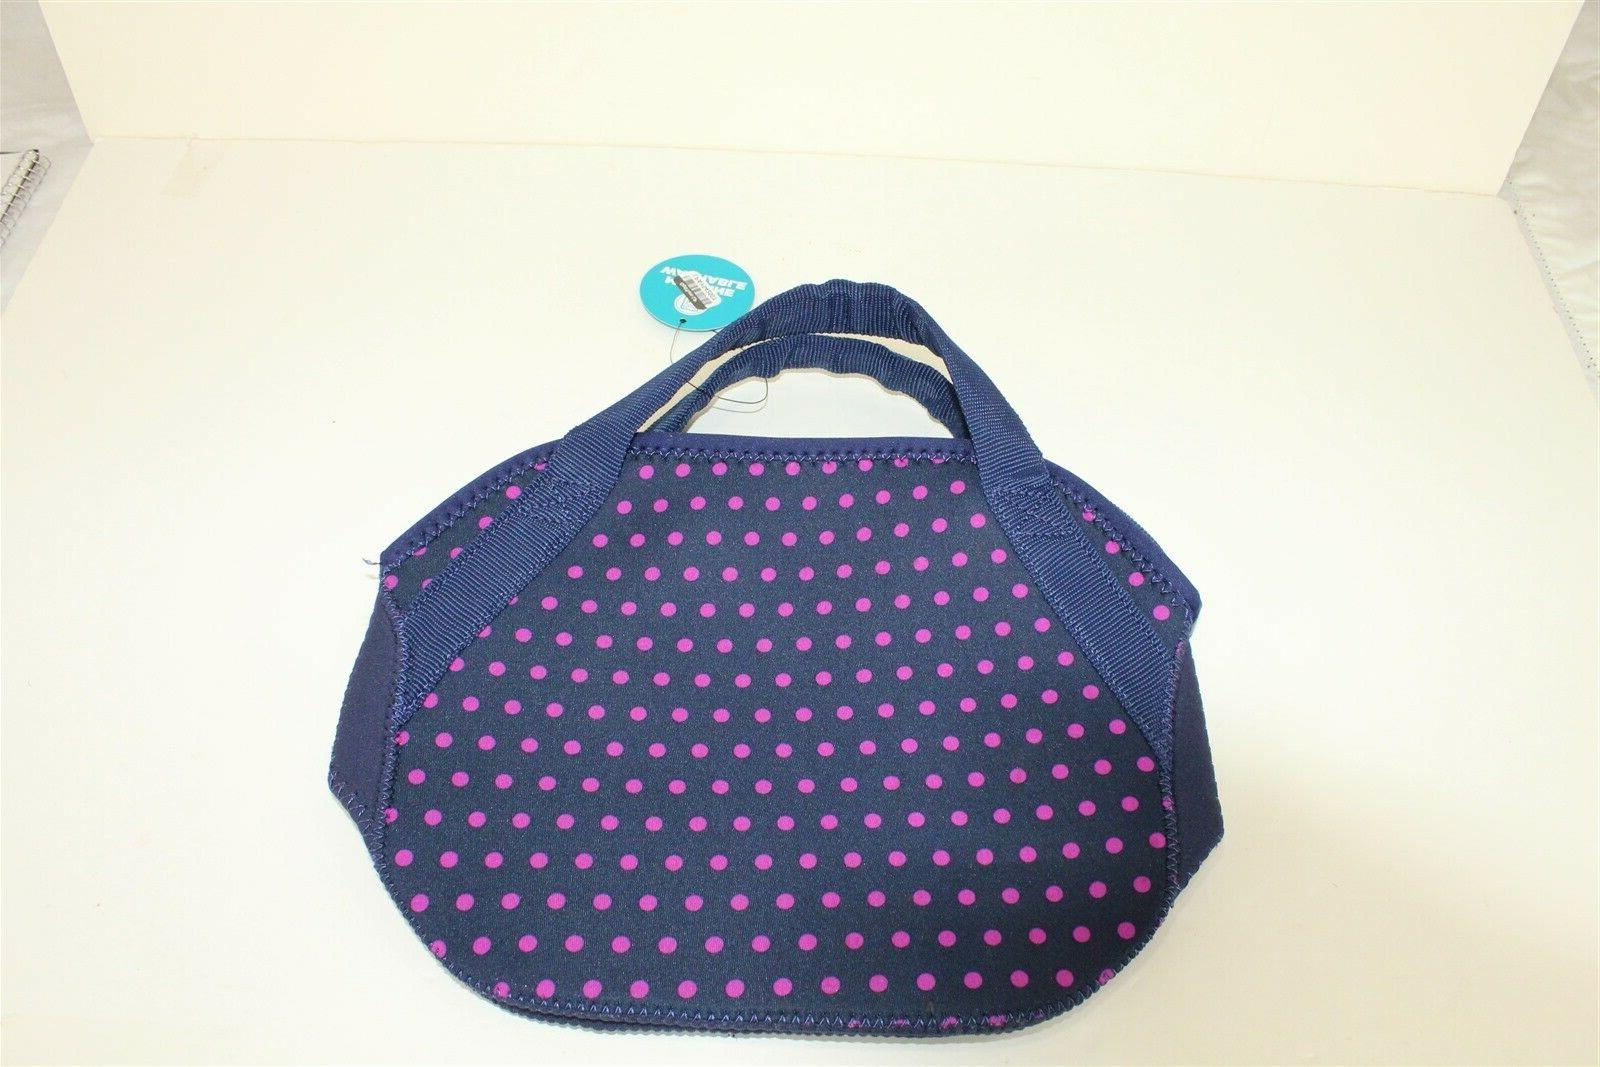 Midtown Bag Blue with Polka 8.5 x x 5.5